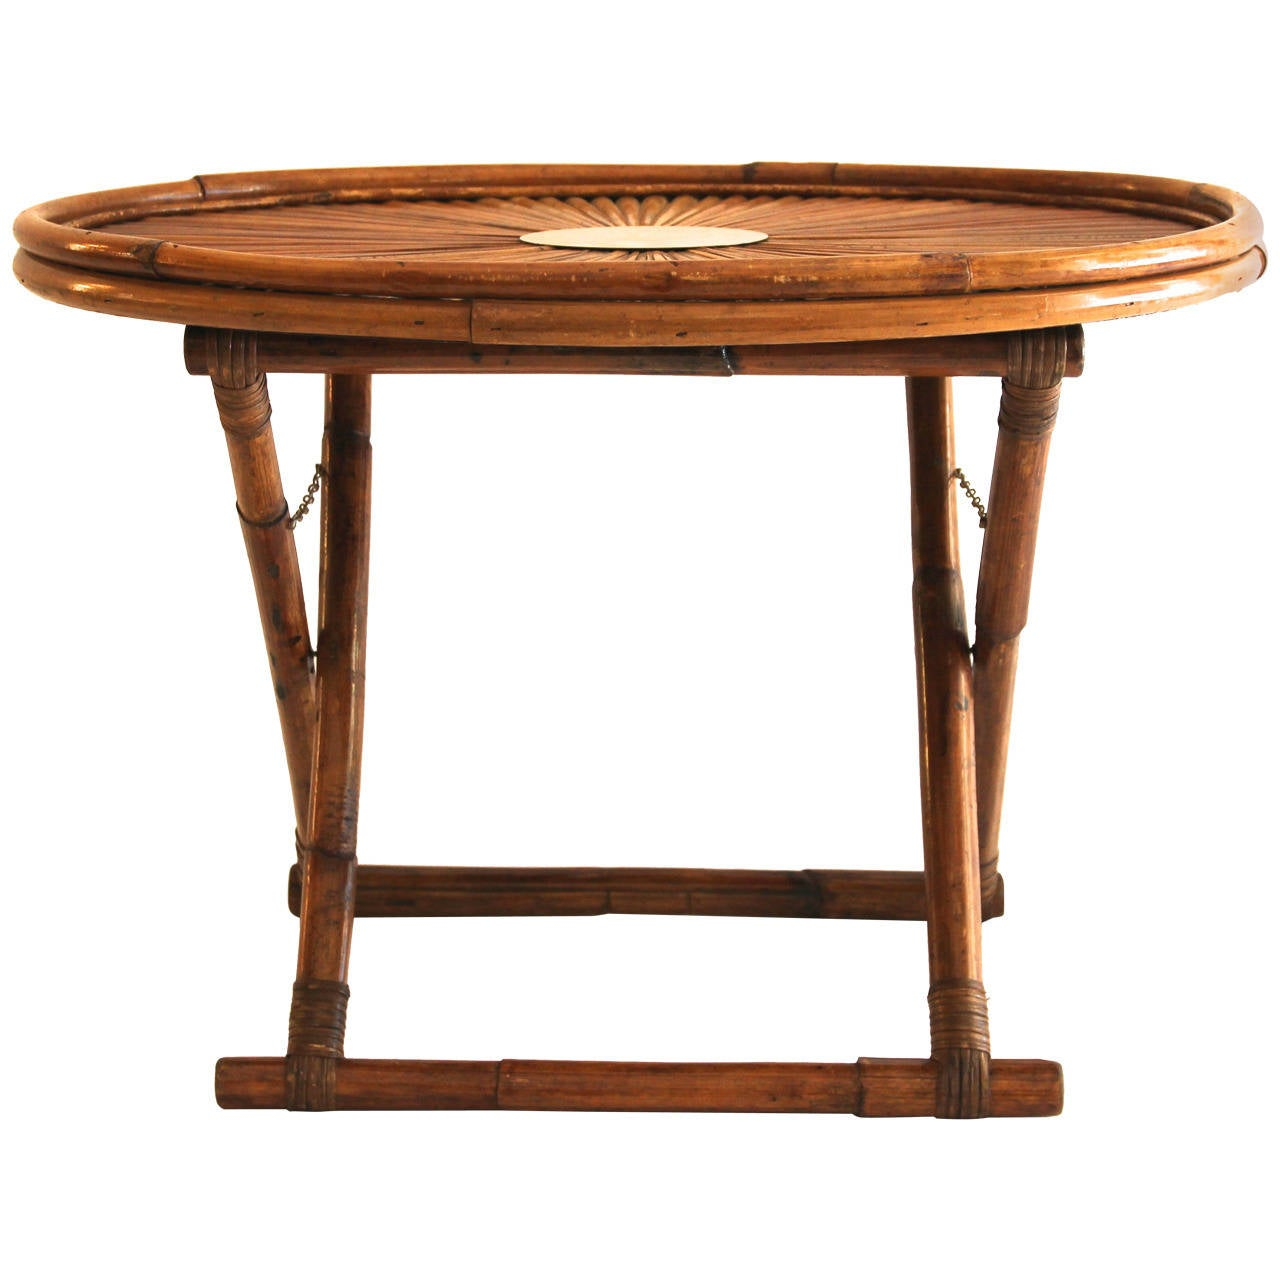 Folding Coffee Table By Gabriella Crespi Bamboo Circa 1970 Signed Italy For Sale At 1stdibs